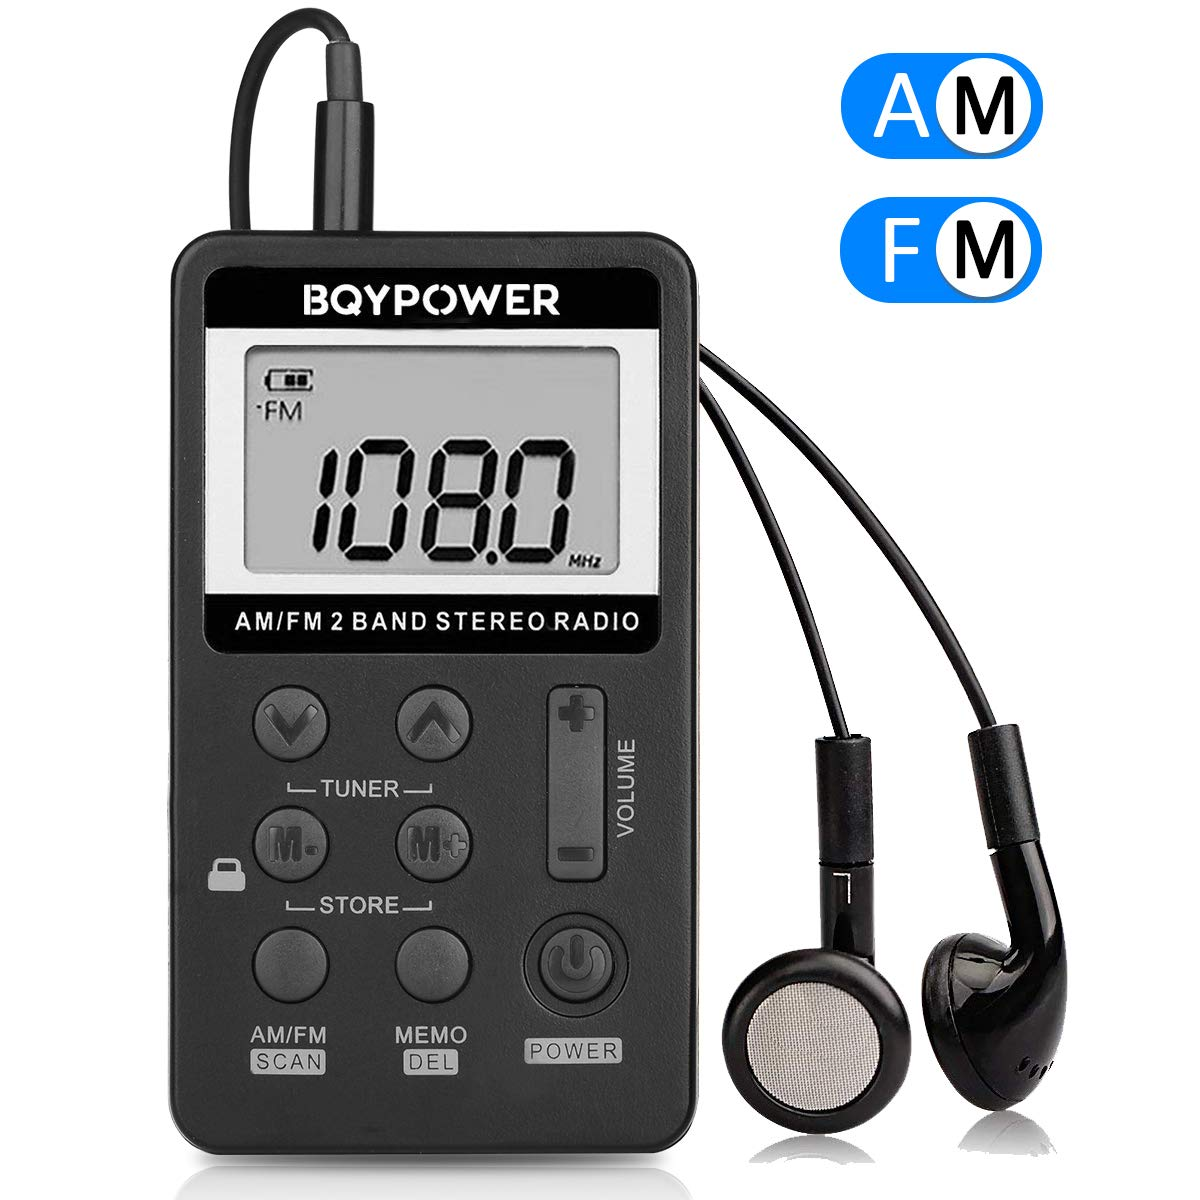 Personal AM FM Pocket Radio, BQYPOWER Portable Mini Digital Tuning Stereo with Rechargeable Battery and Earphone for Walk/Jogging/Gym/Camping